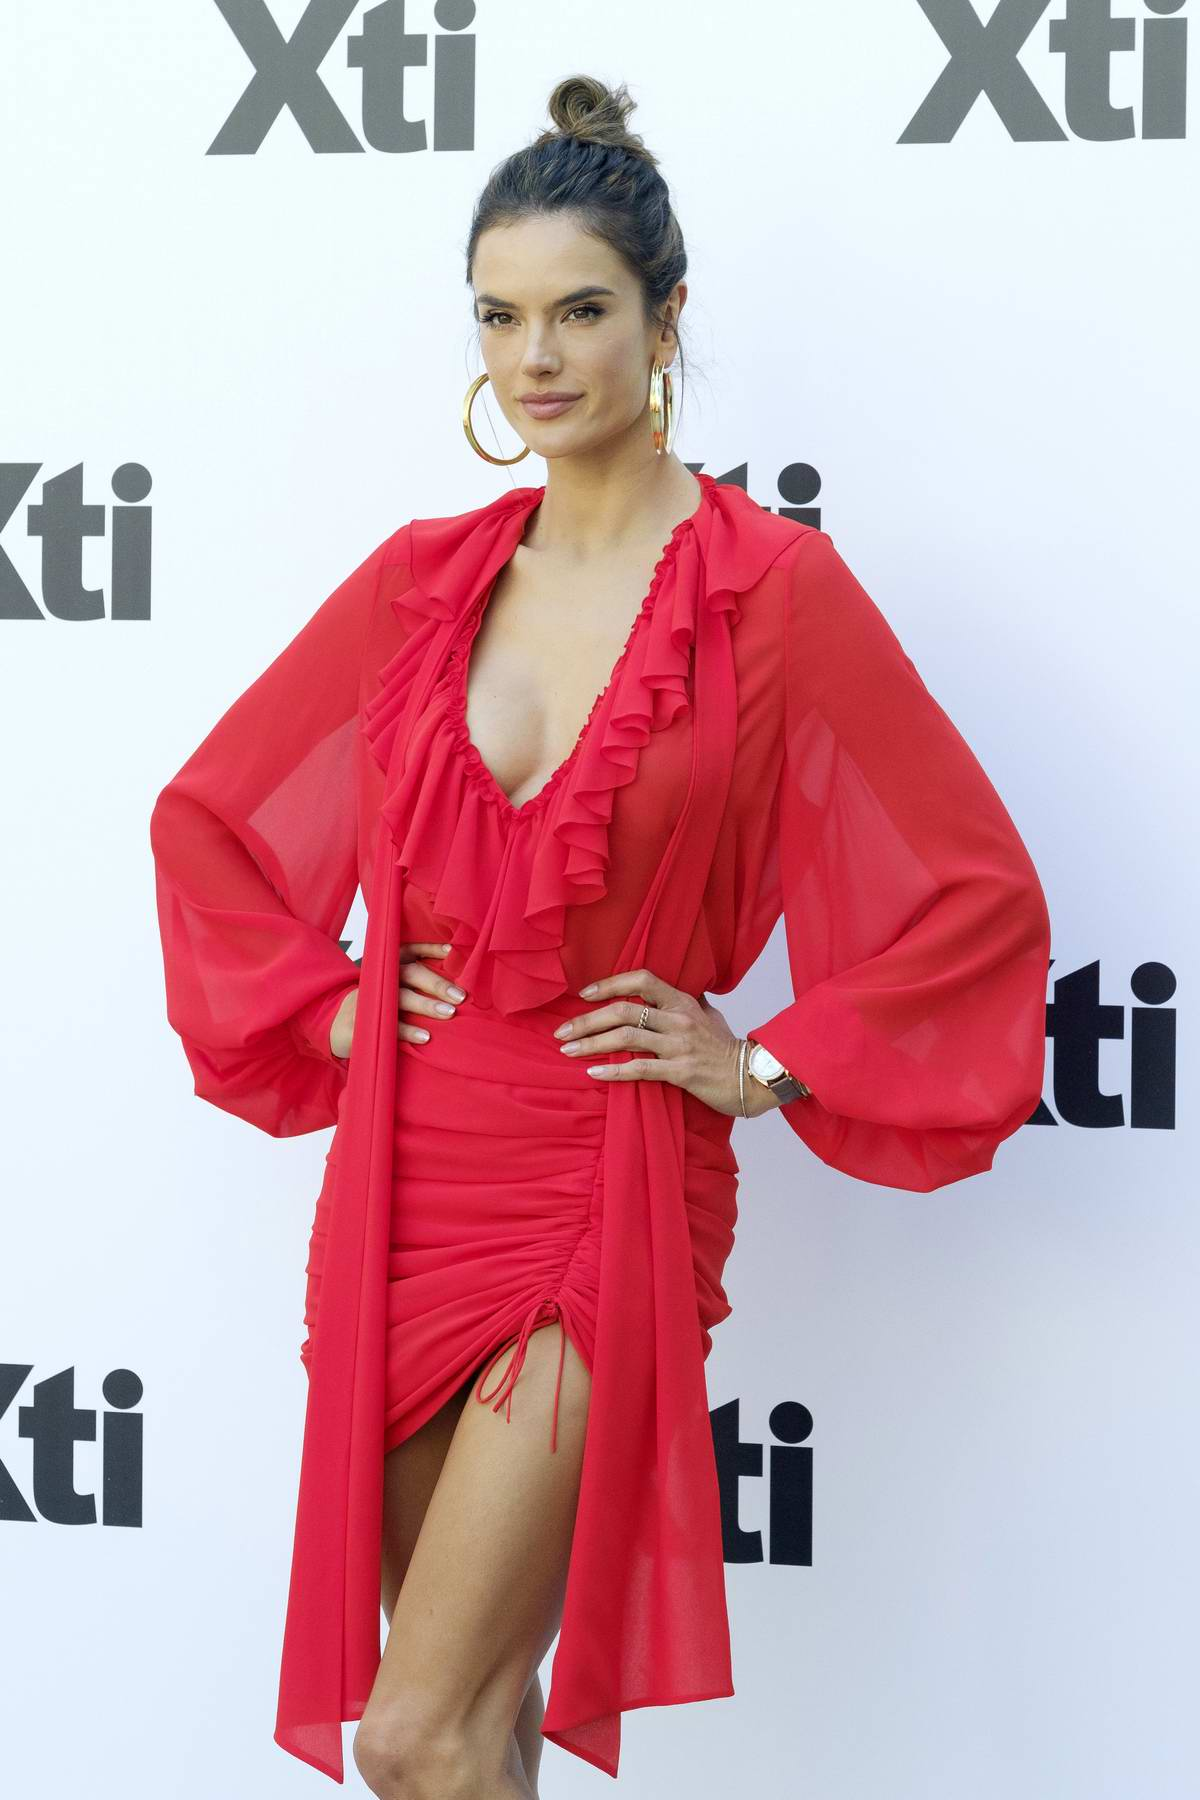 Alessandra Ambrosio attends 'Xti New Collection' presentation at Santo Mauro Hotel in Madrid, Spain